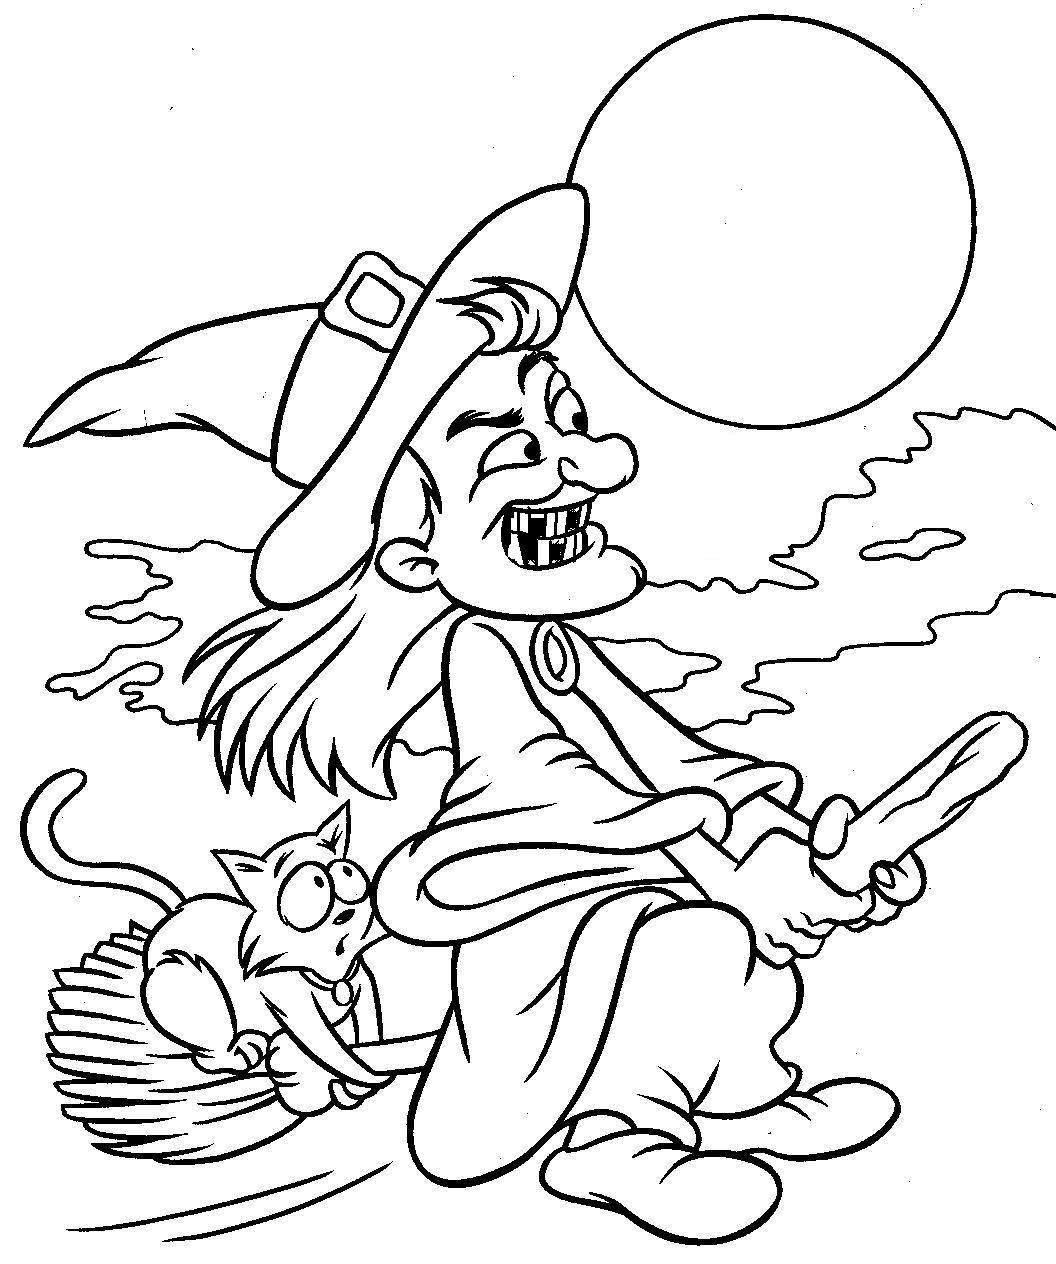 entertaining halloween colouring pages for adults teens kids